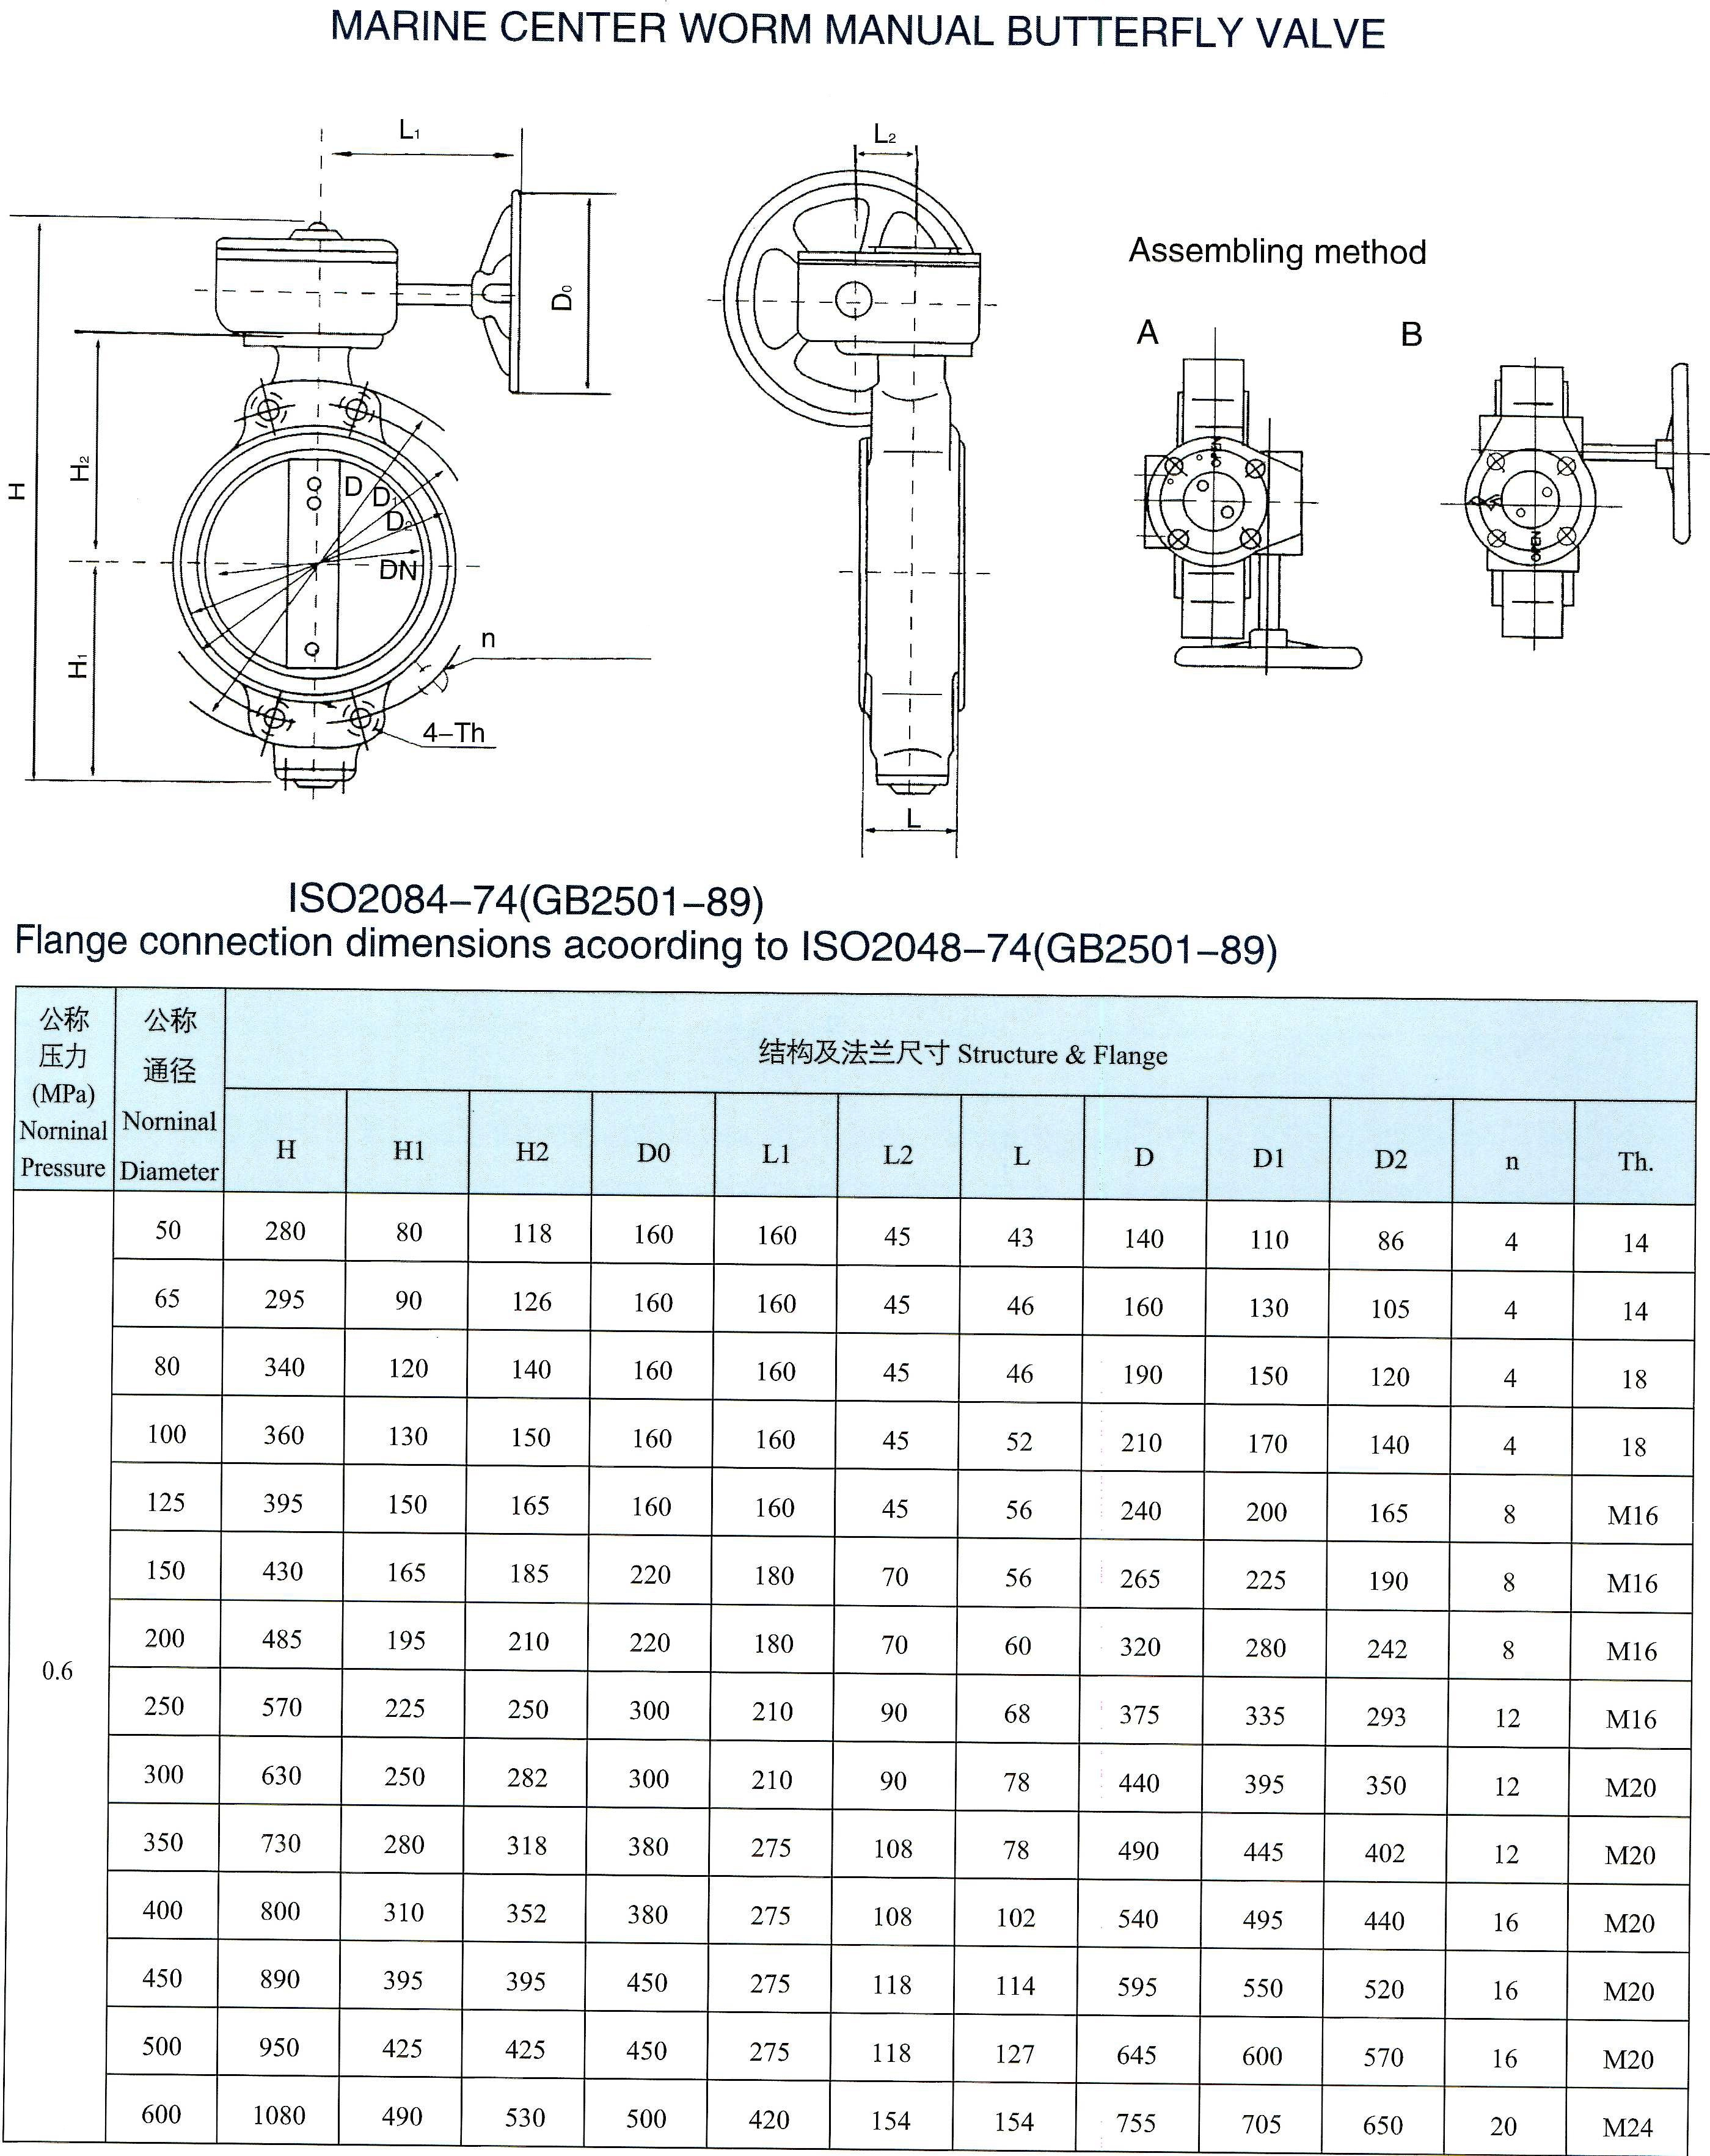 marine center worm manual butterfly valve